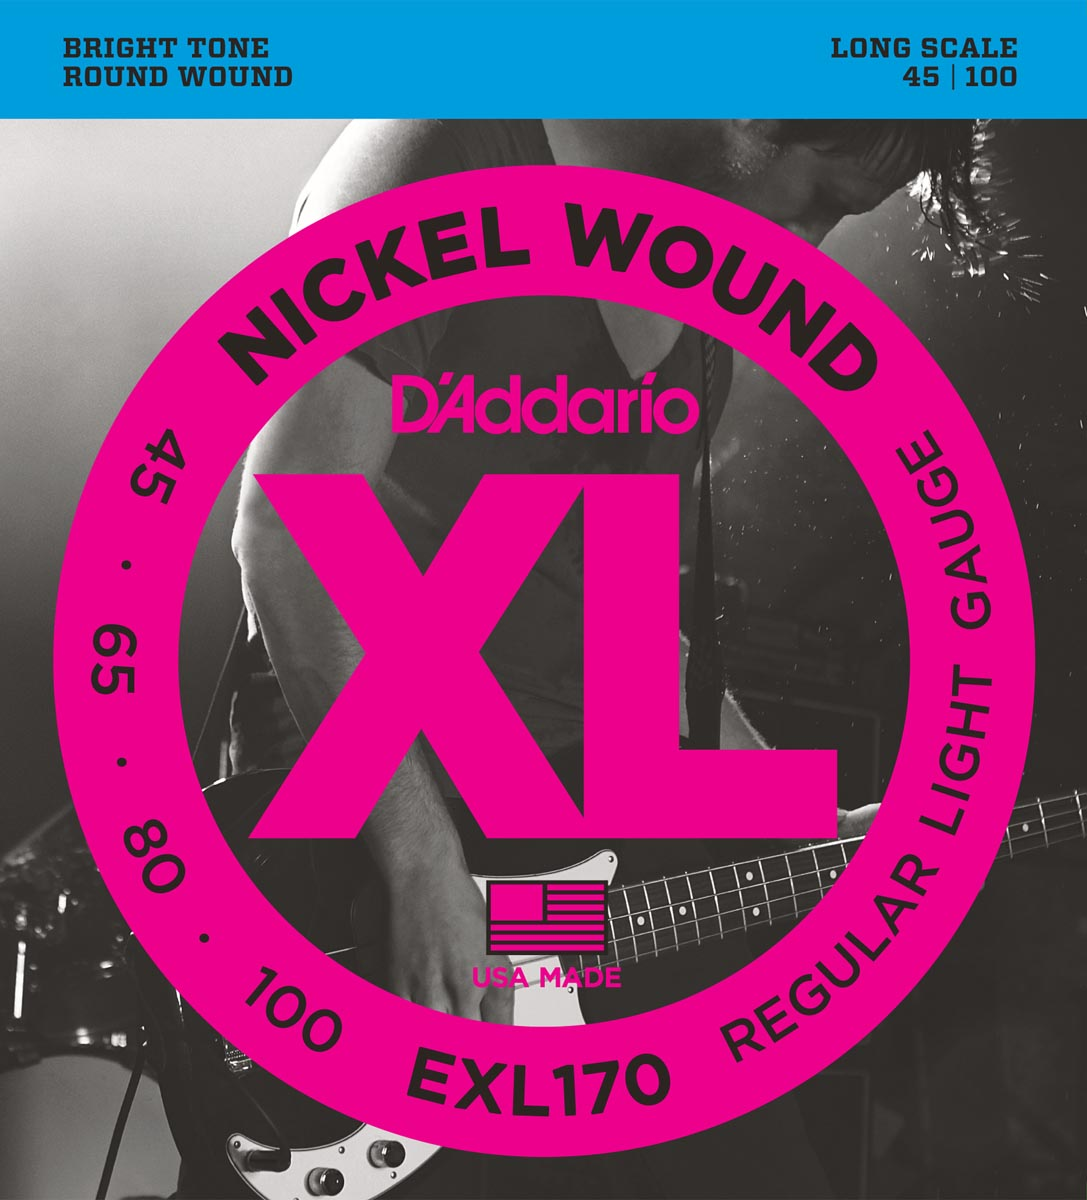 DADDARIO EXL170 NICKEL WOUND BASS, LIGHT, LONG SCALE [45-100]